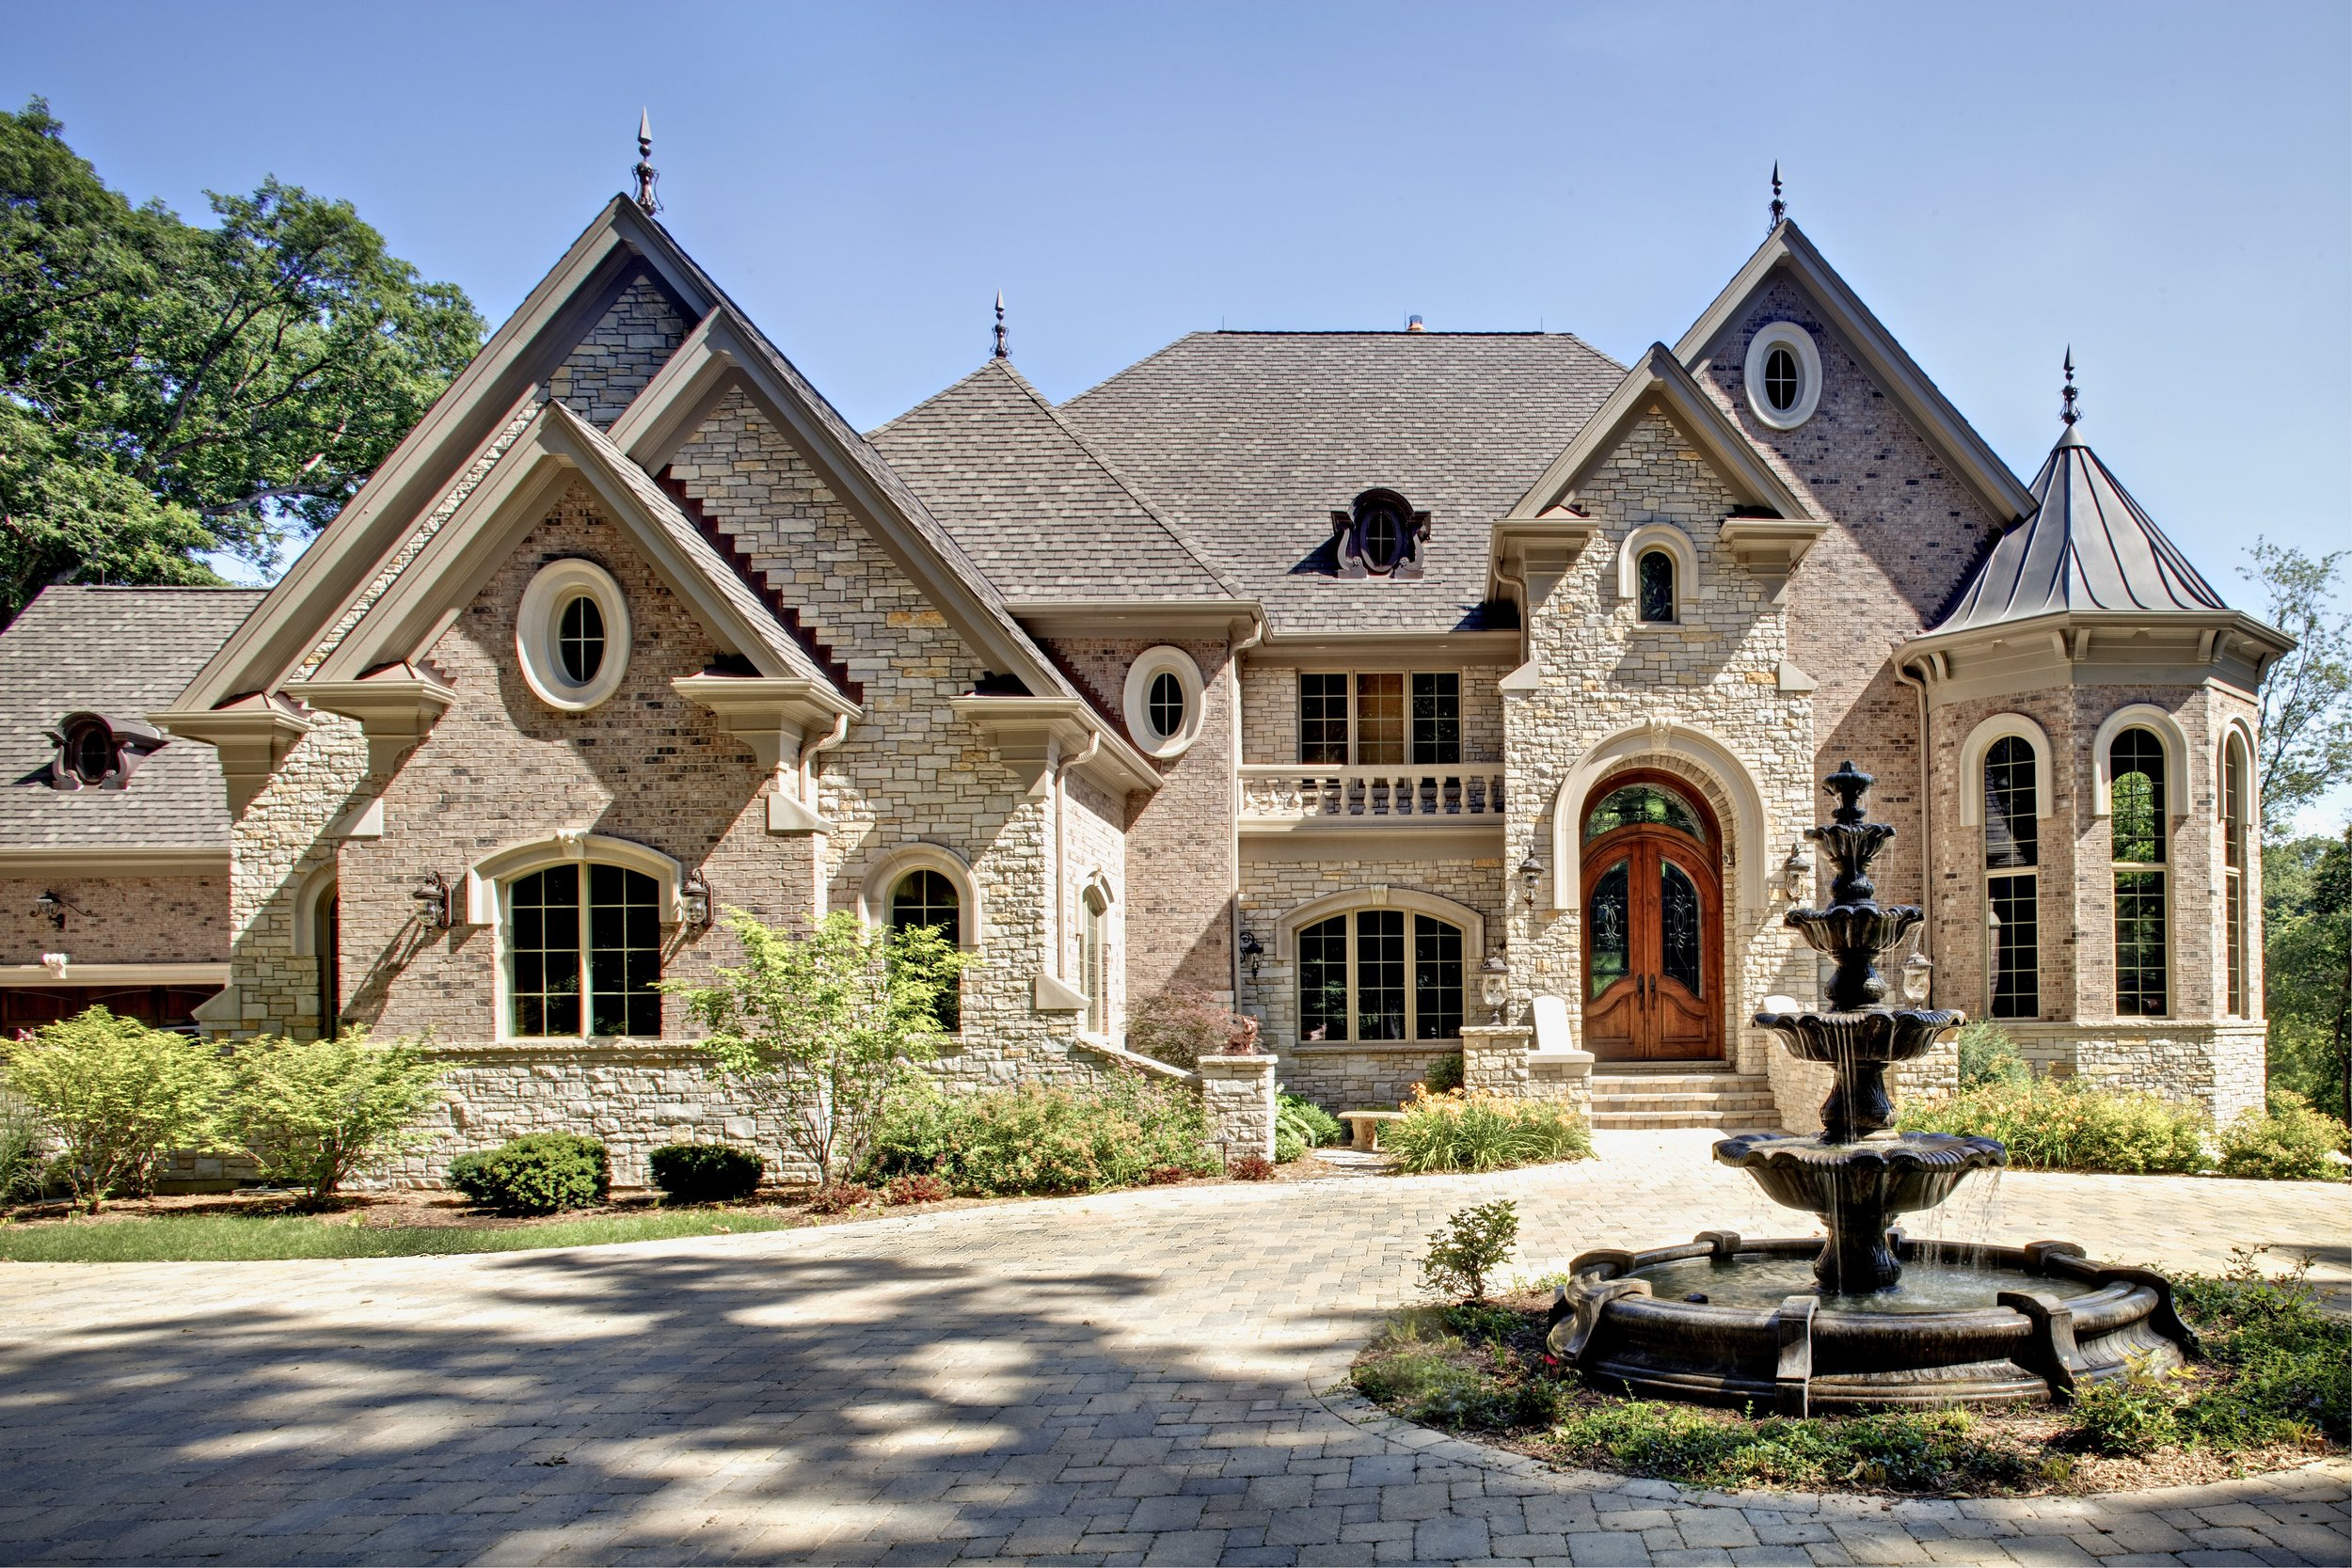 Luxury Custom Home by Southampton in Northern Illinois.  Custom Exterior with Turret and Carved Limestone.